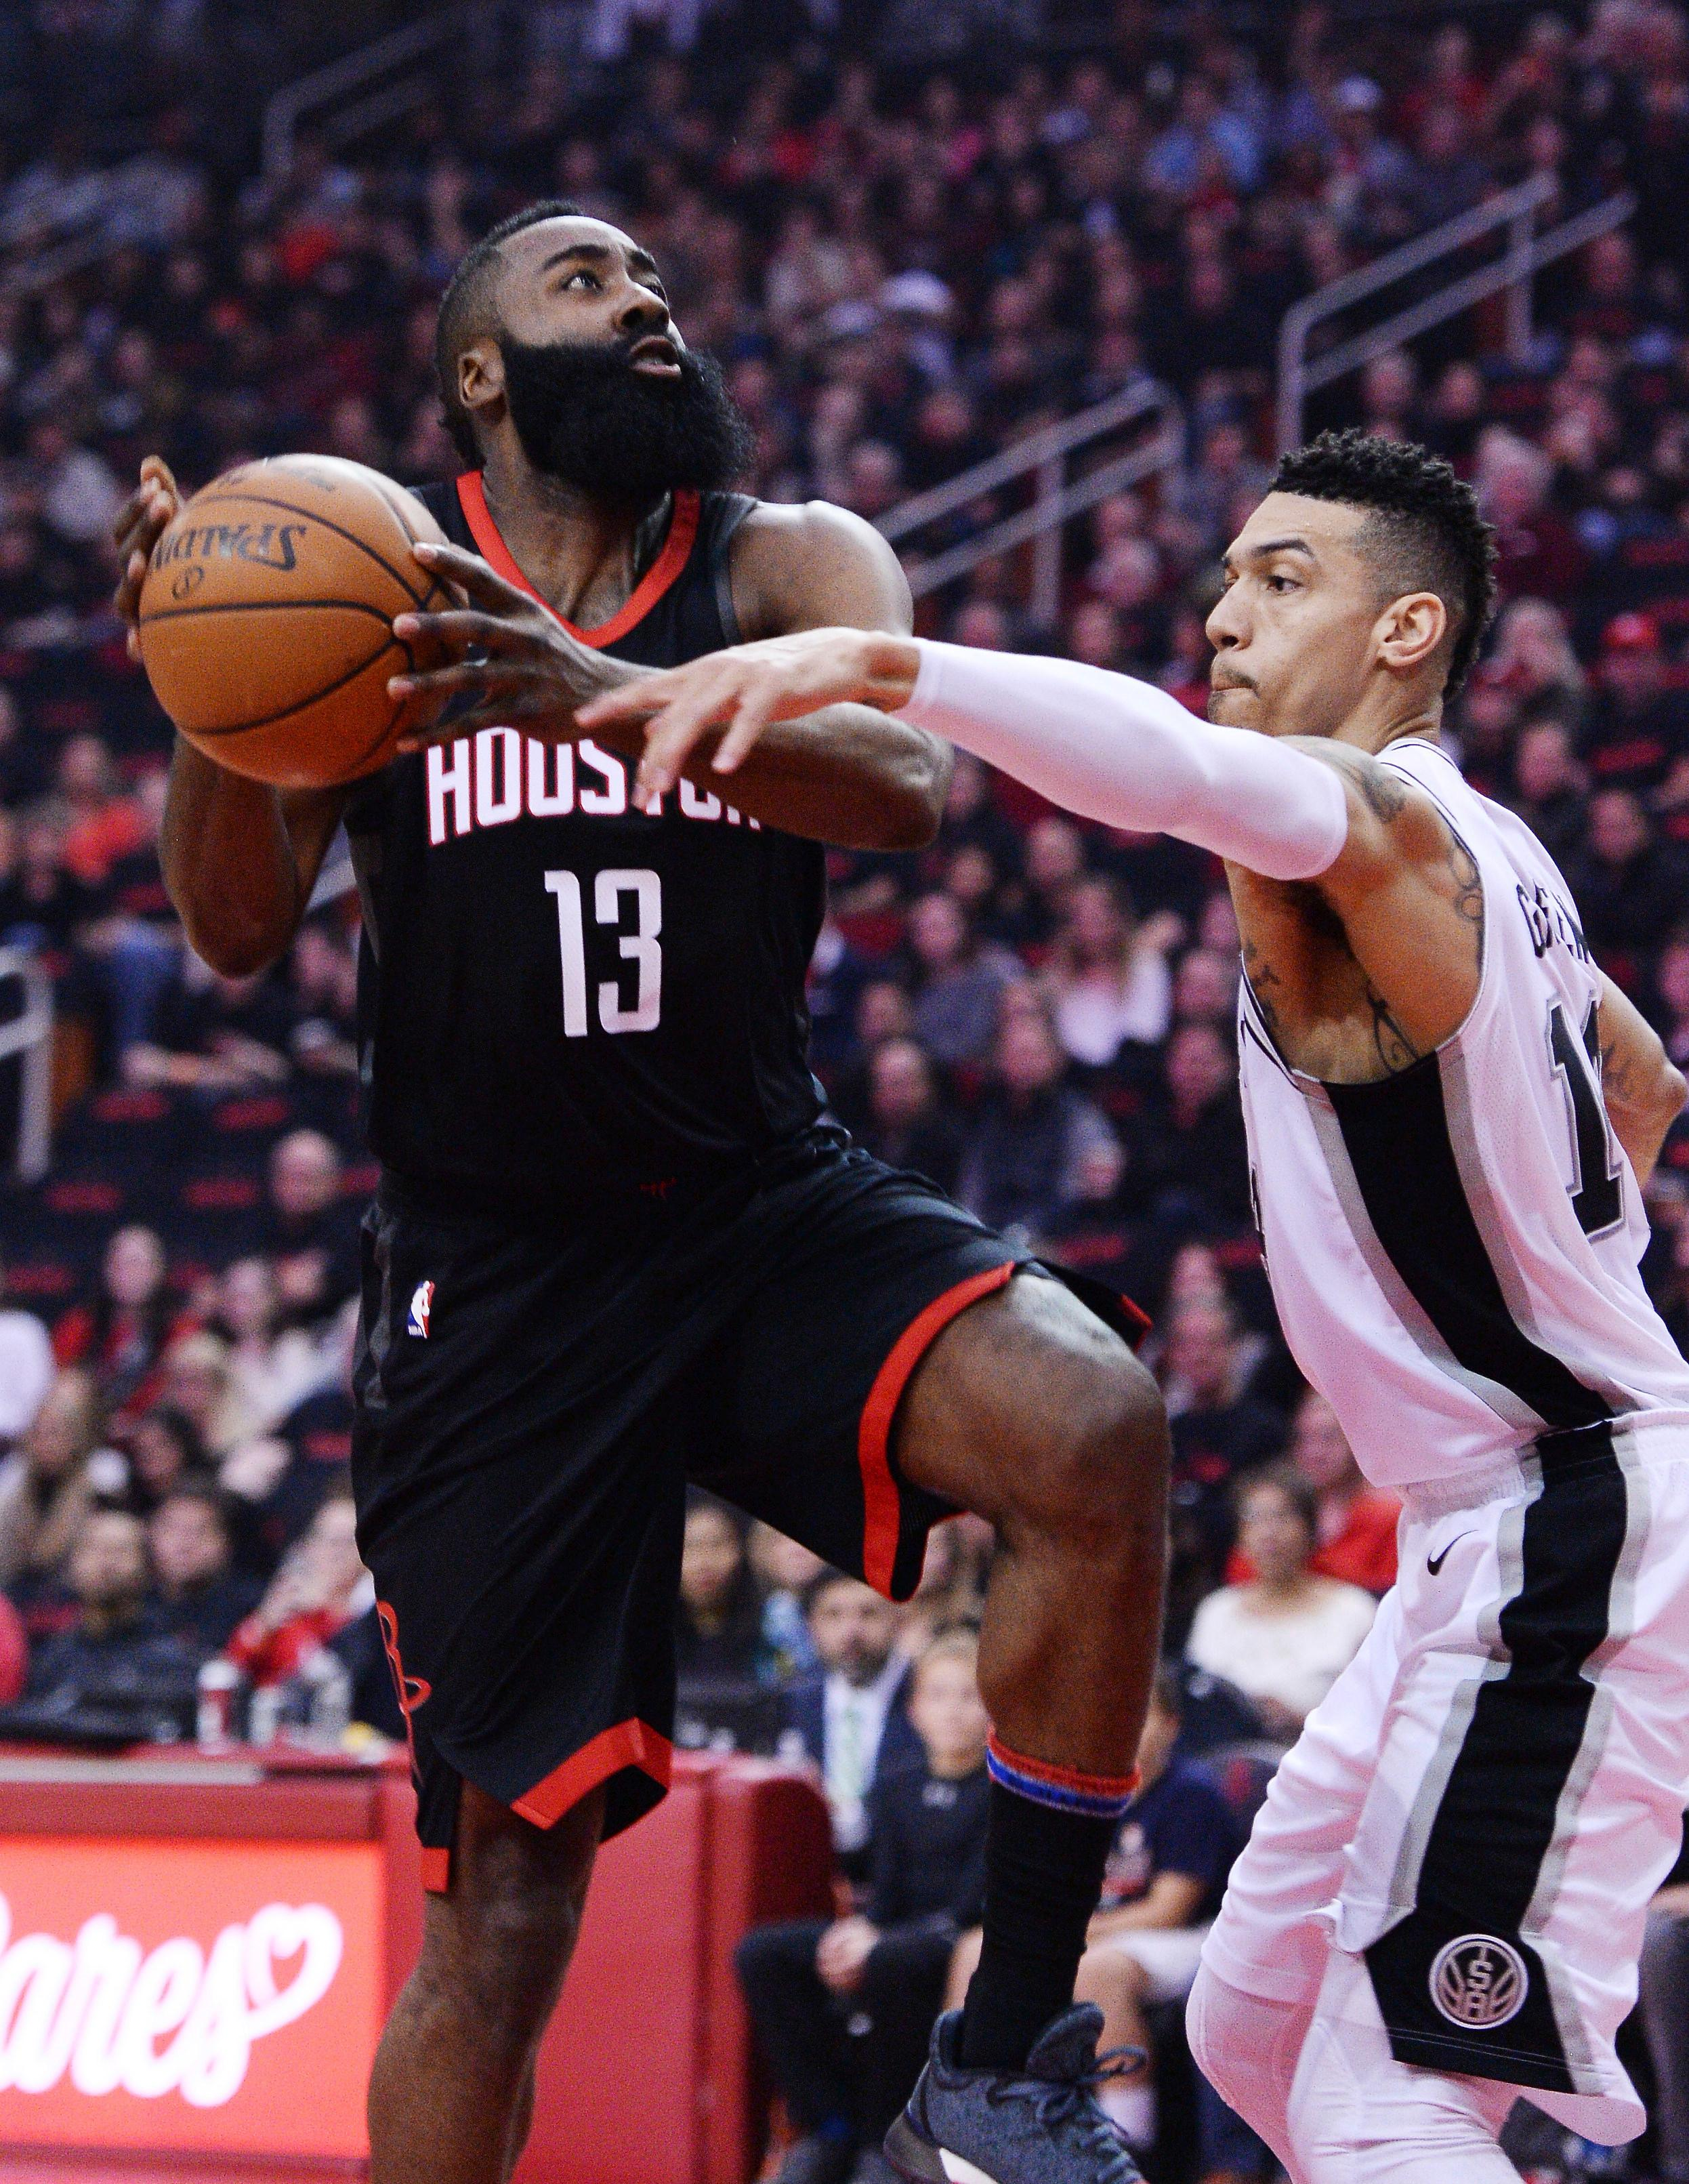 Houston Rockets guard James Harden (13) looks to shoot against San Antonio Spurs guard Danny Green (14) in the first half of an NBA basketball game Friday, Dec. 15, 2017, in Houston. (AP Photo/George Bridges)